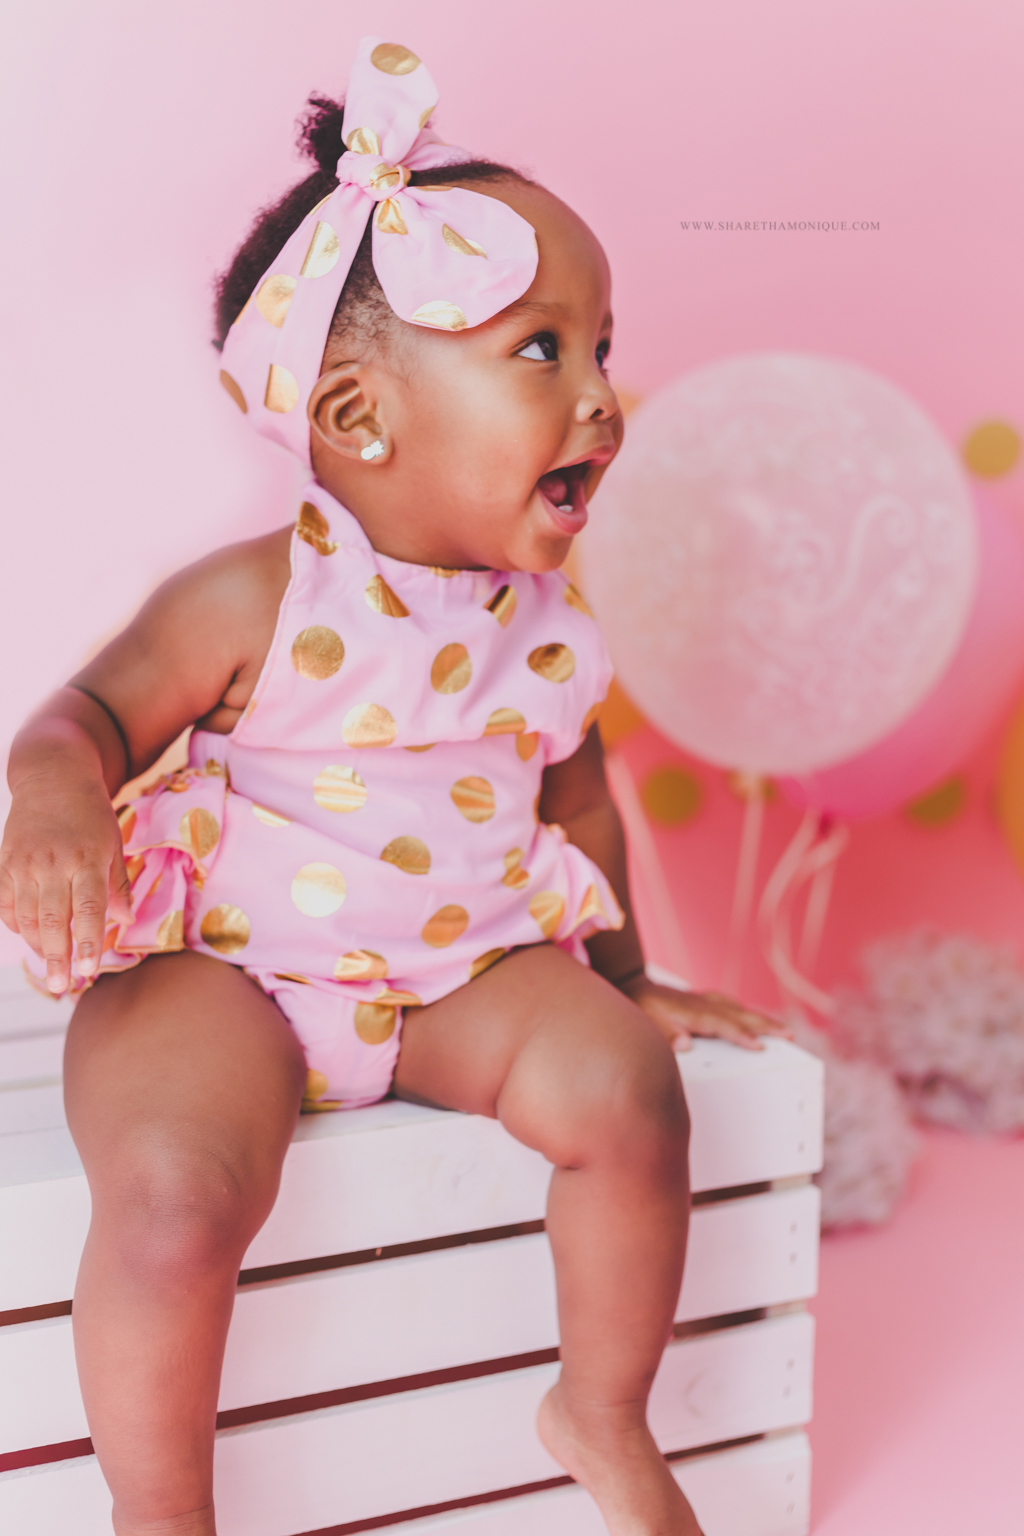 Charlotte Baby Cake Smash - One Year Birthday-4.jpg